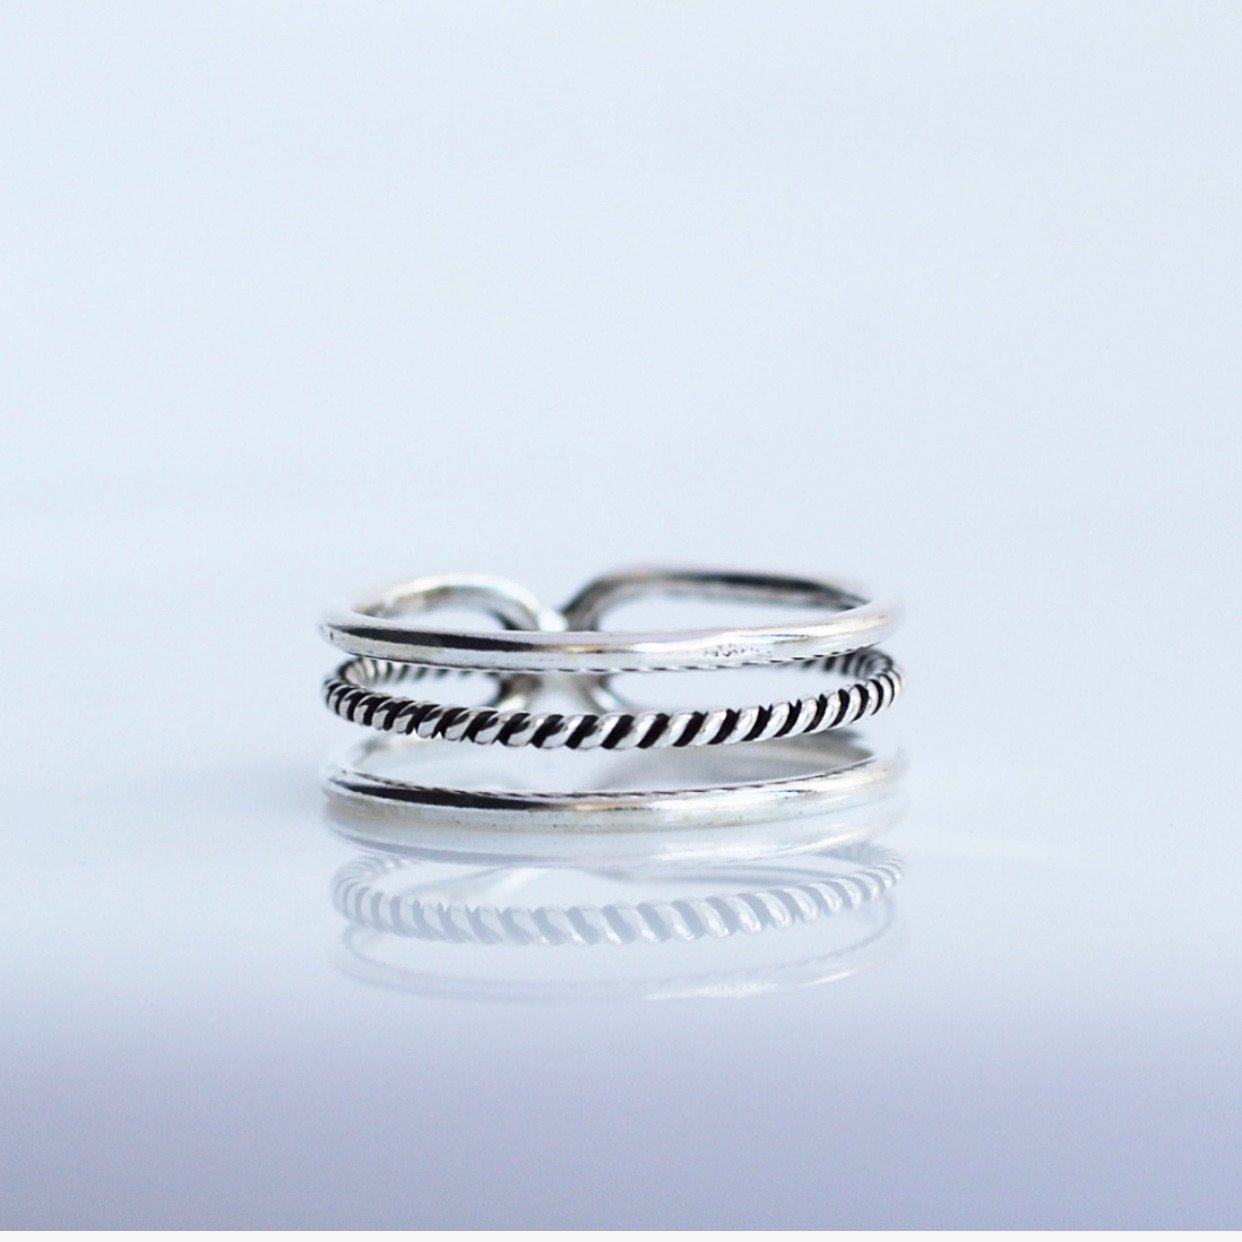 Effortless Twist Ring, stack ring, gifts for her, jewelry gifts, simple jewelry, sterling silver ring by KesleyBoutique.com, Girlwith3jobs.com